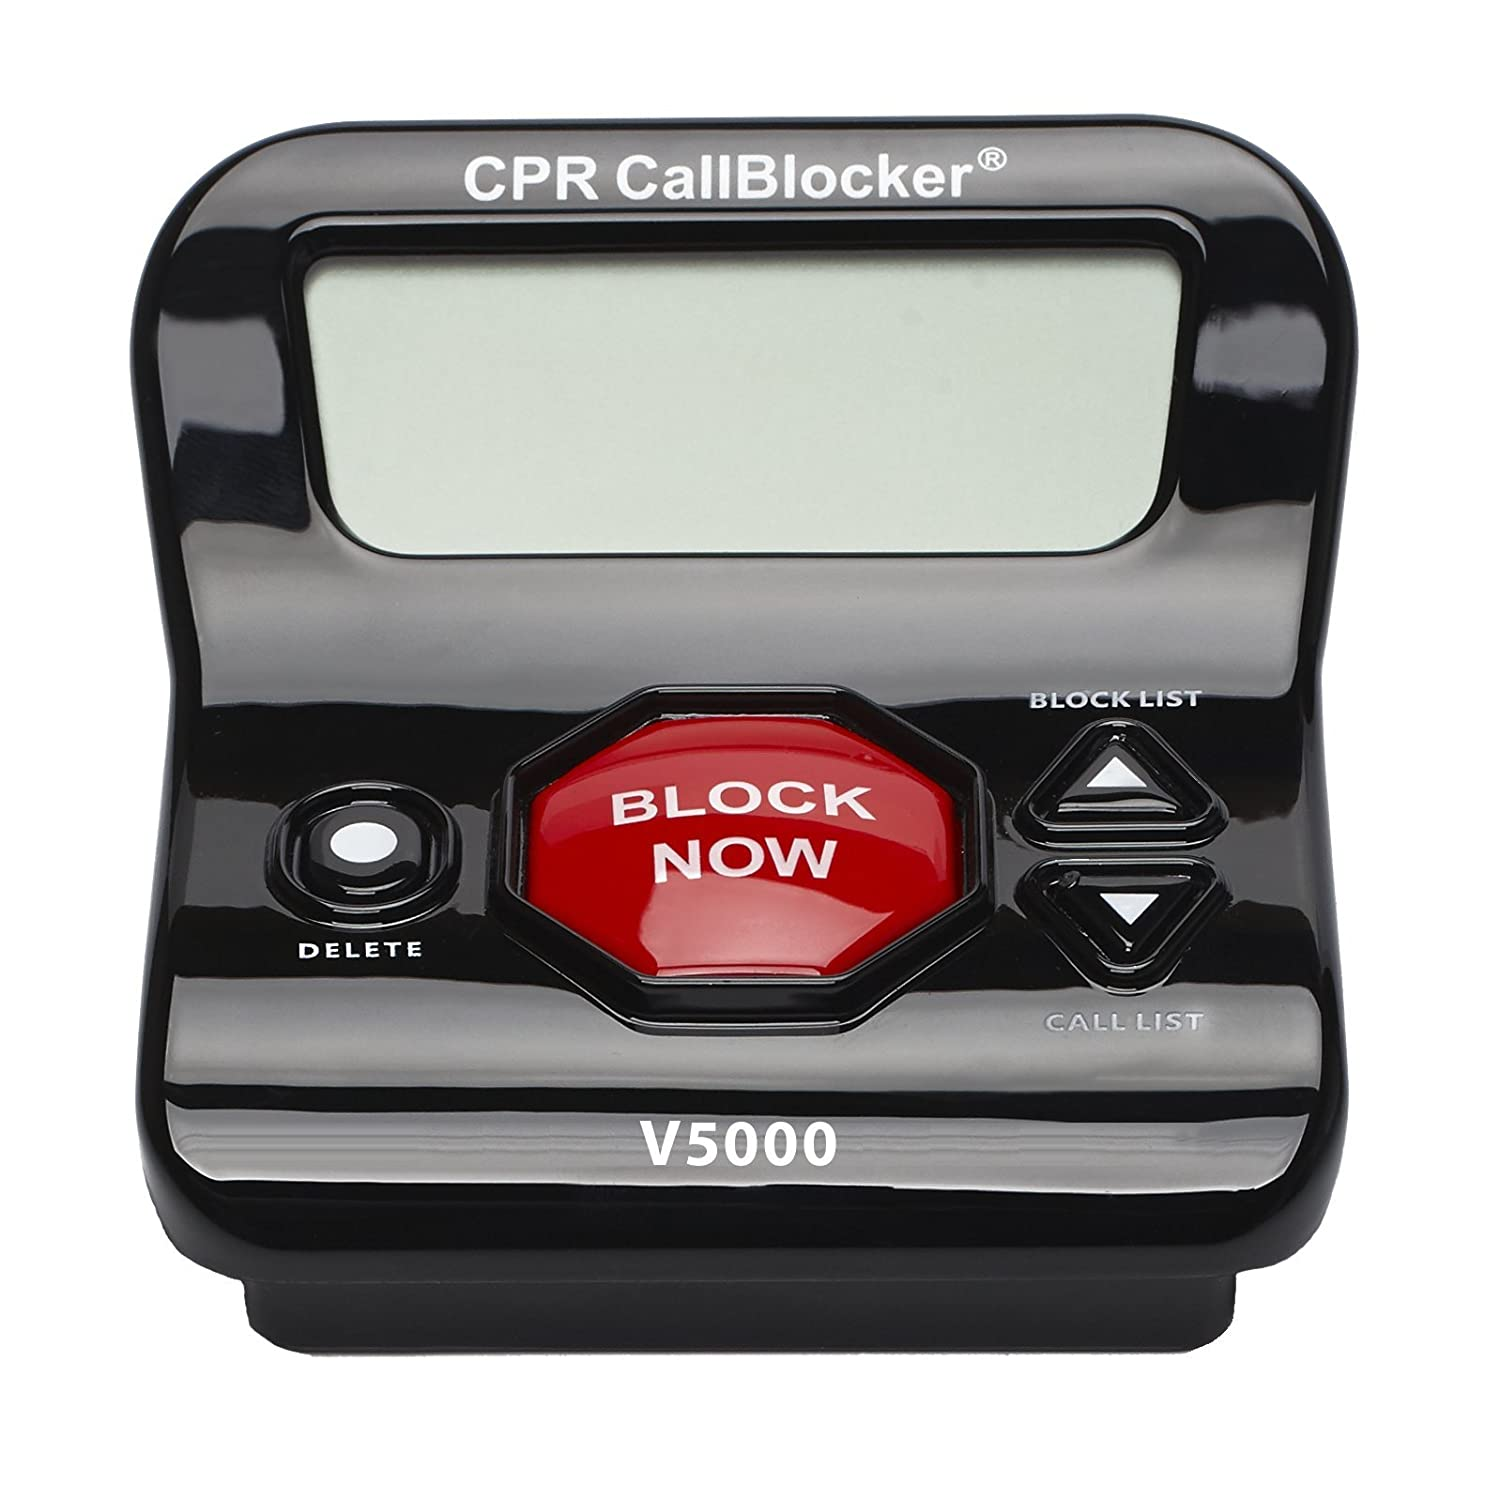 Amazon: Cpr V5000 Call Blocker  Block All Robocalls, Political Calls,  Scam Calls, Unwanted Calls Block All Nuisance Calls At The Touch Of A  Button: